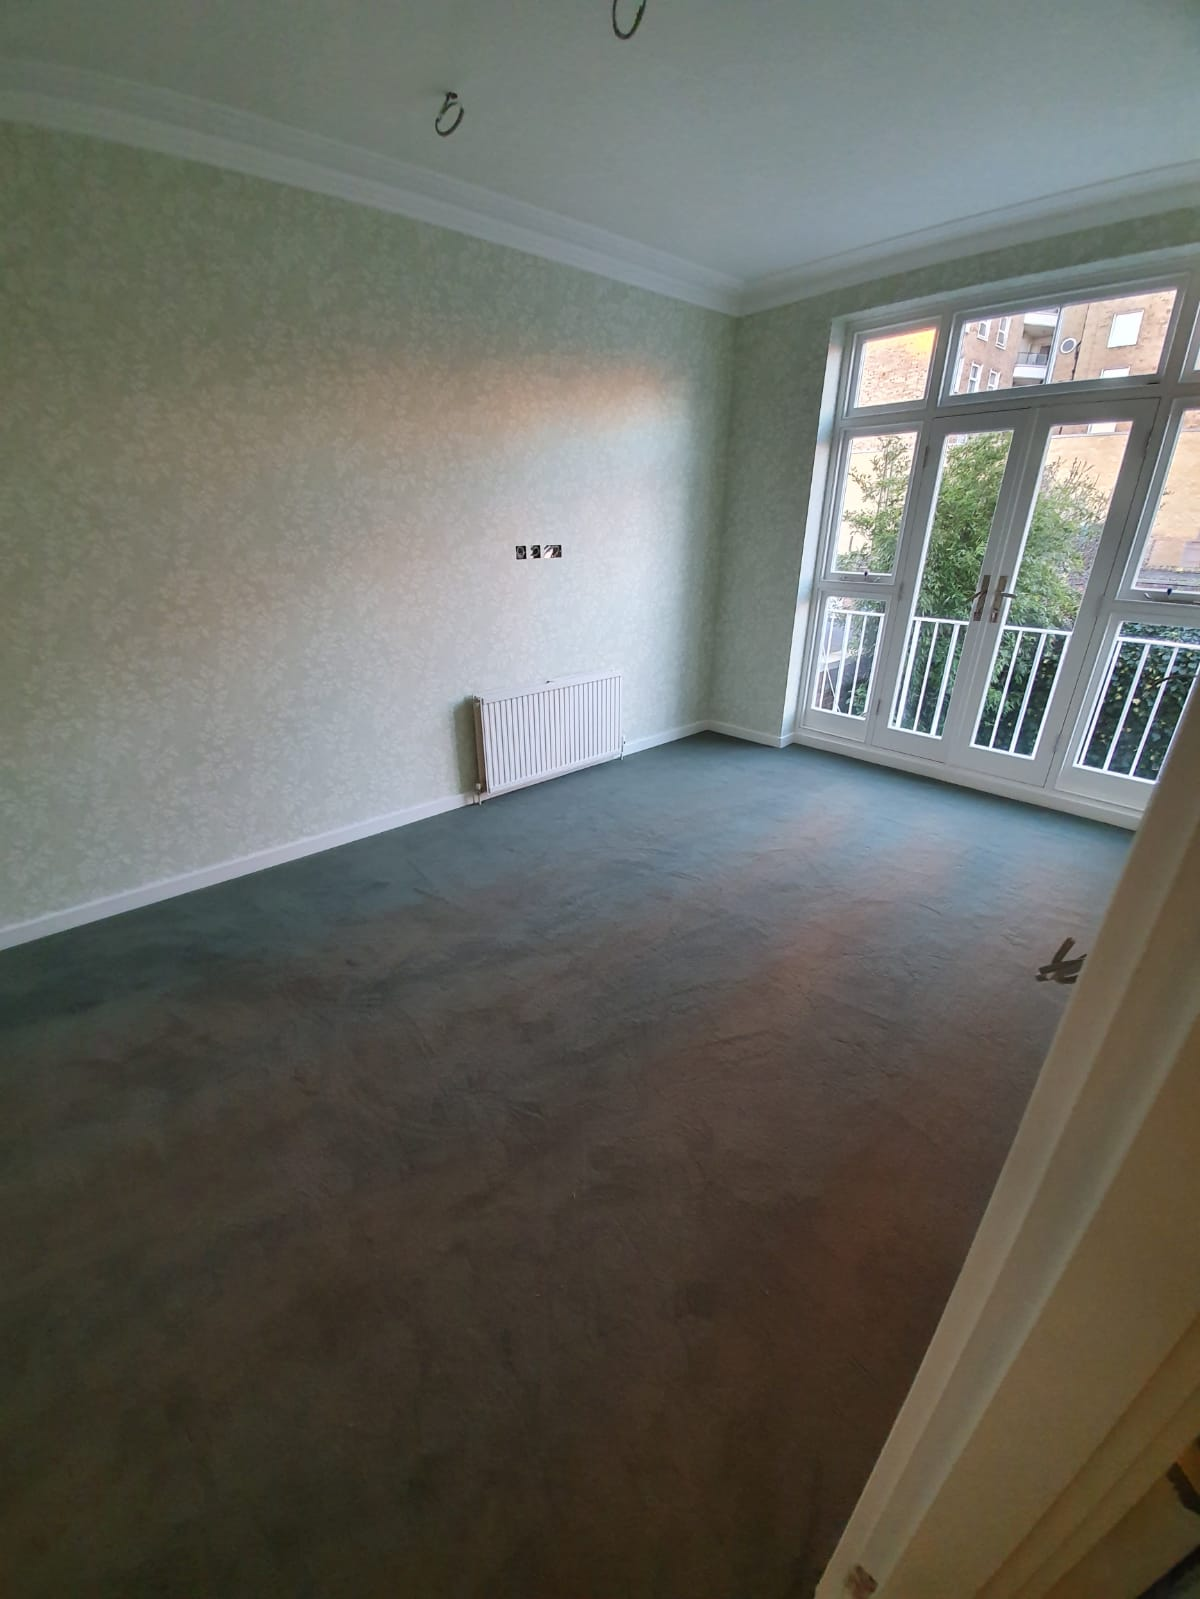 To supply & install grey carpet to room 1